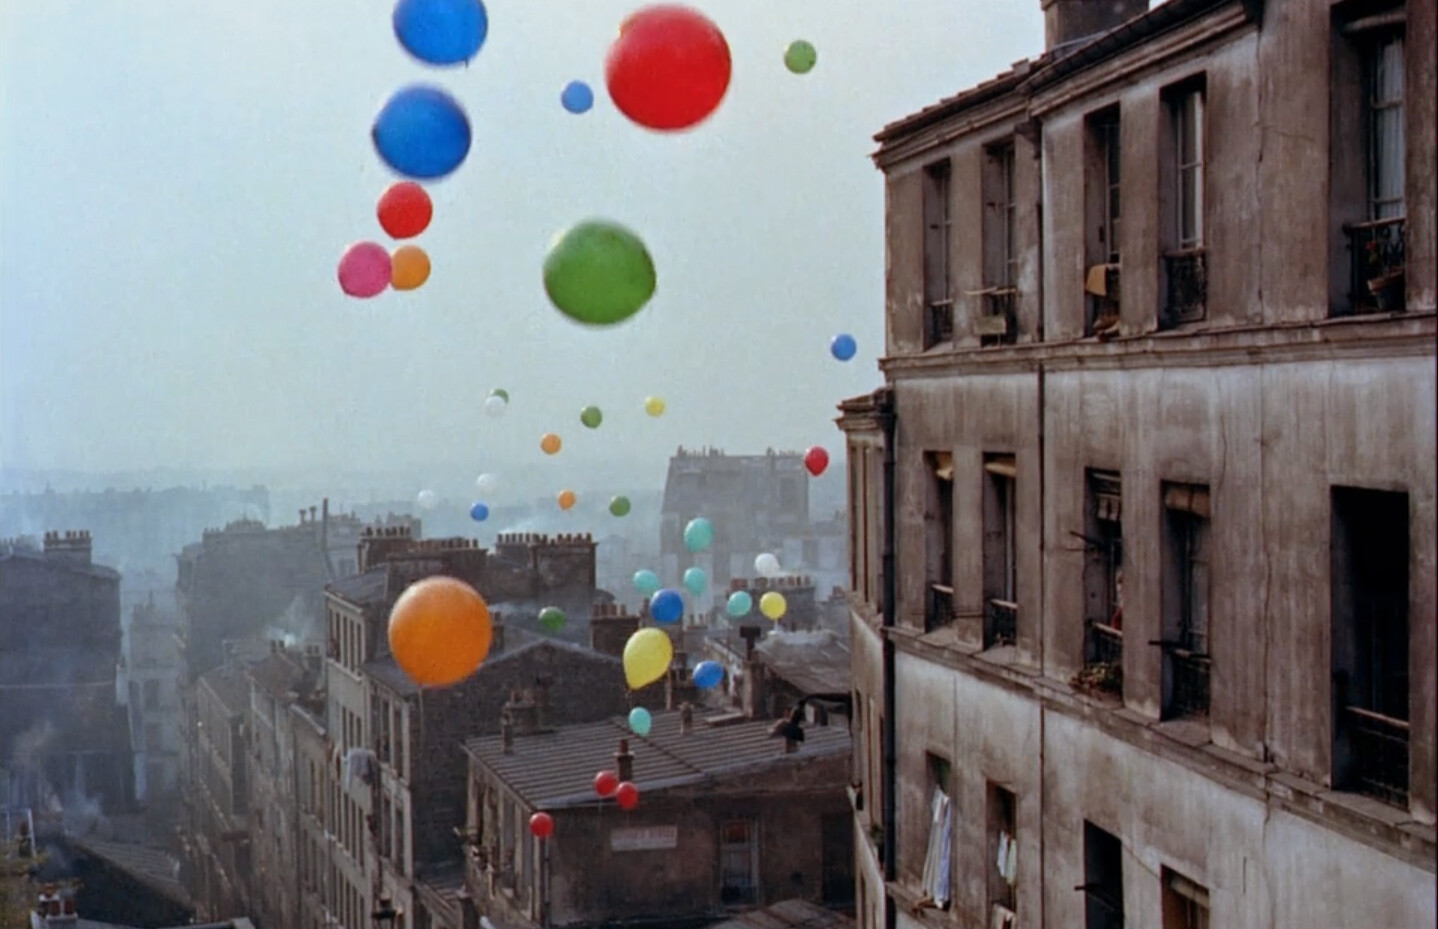 Made To Fit Or The Gathering Of The Balloons Journal 65 May 2015 E Flux